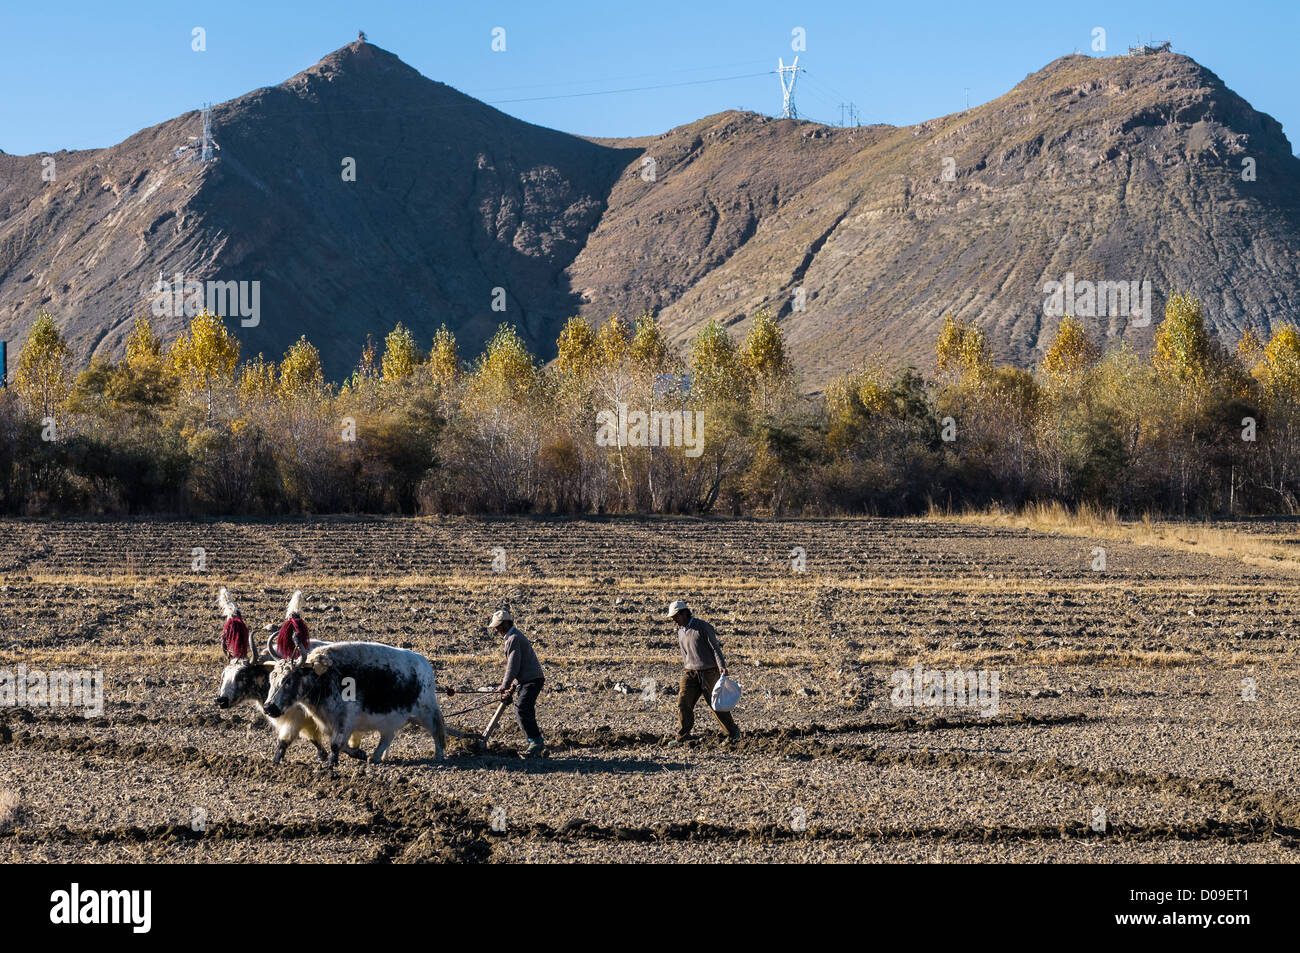 As farmer controls plow pulled by pair yaks, partner sows seeds, near Lhasa, Tibet, China - Stock Image